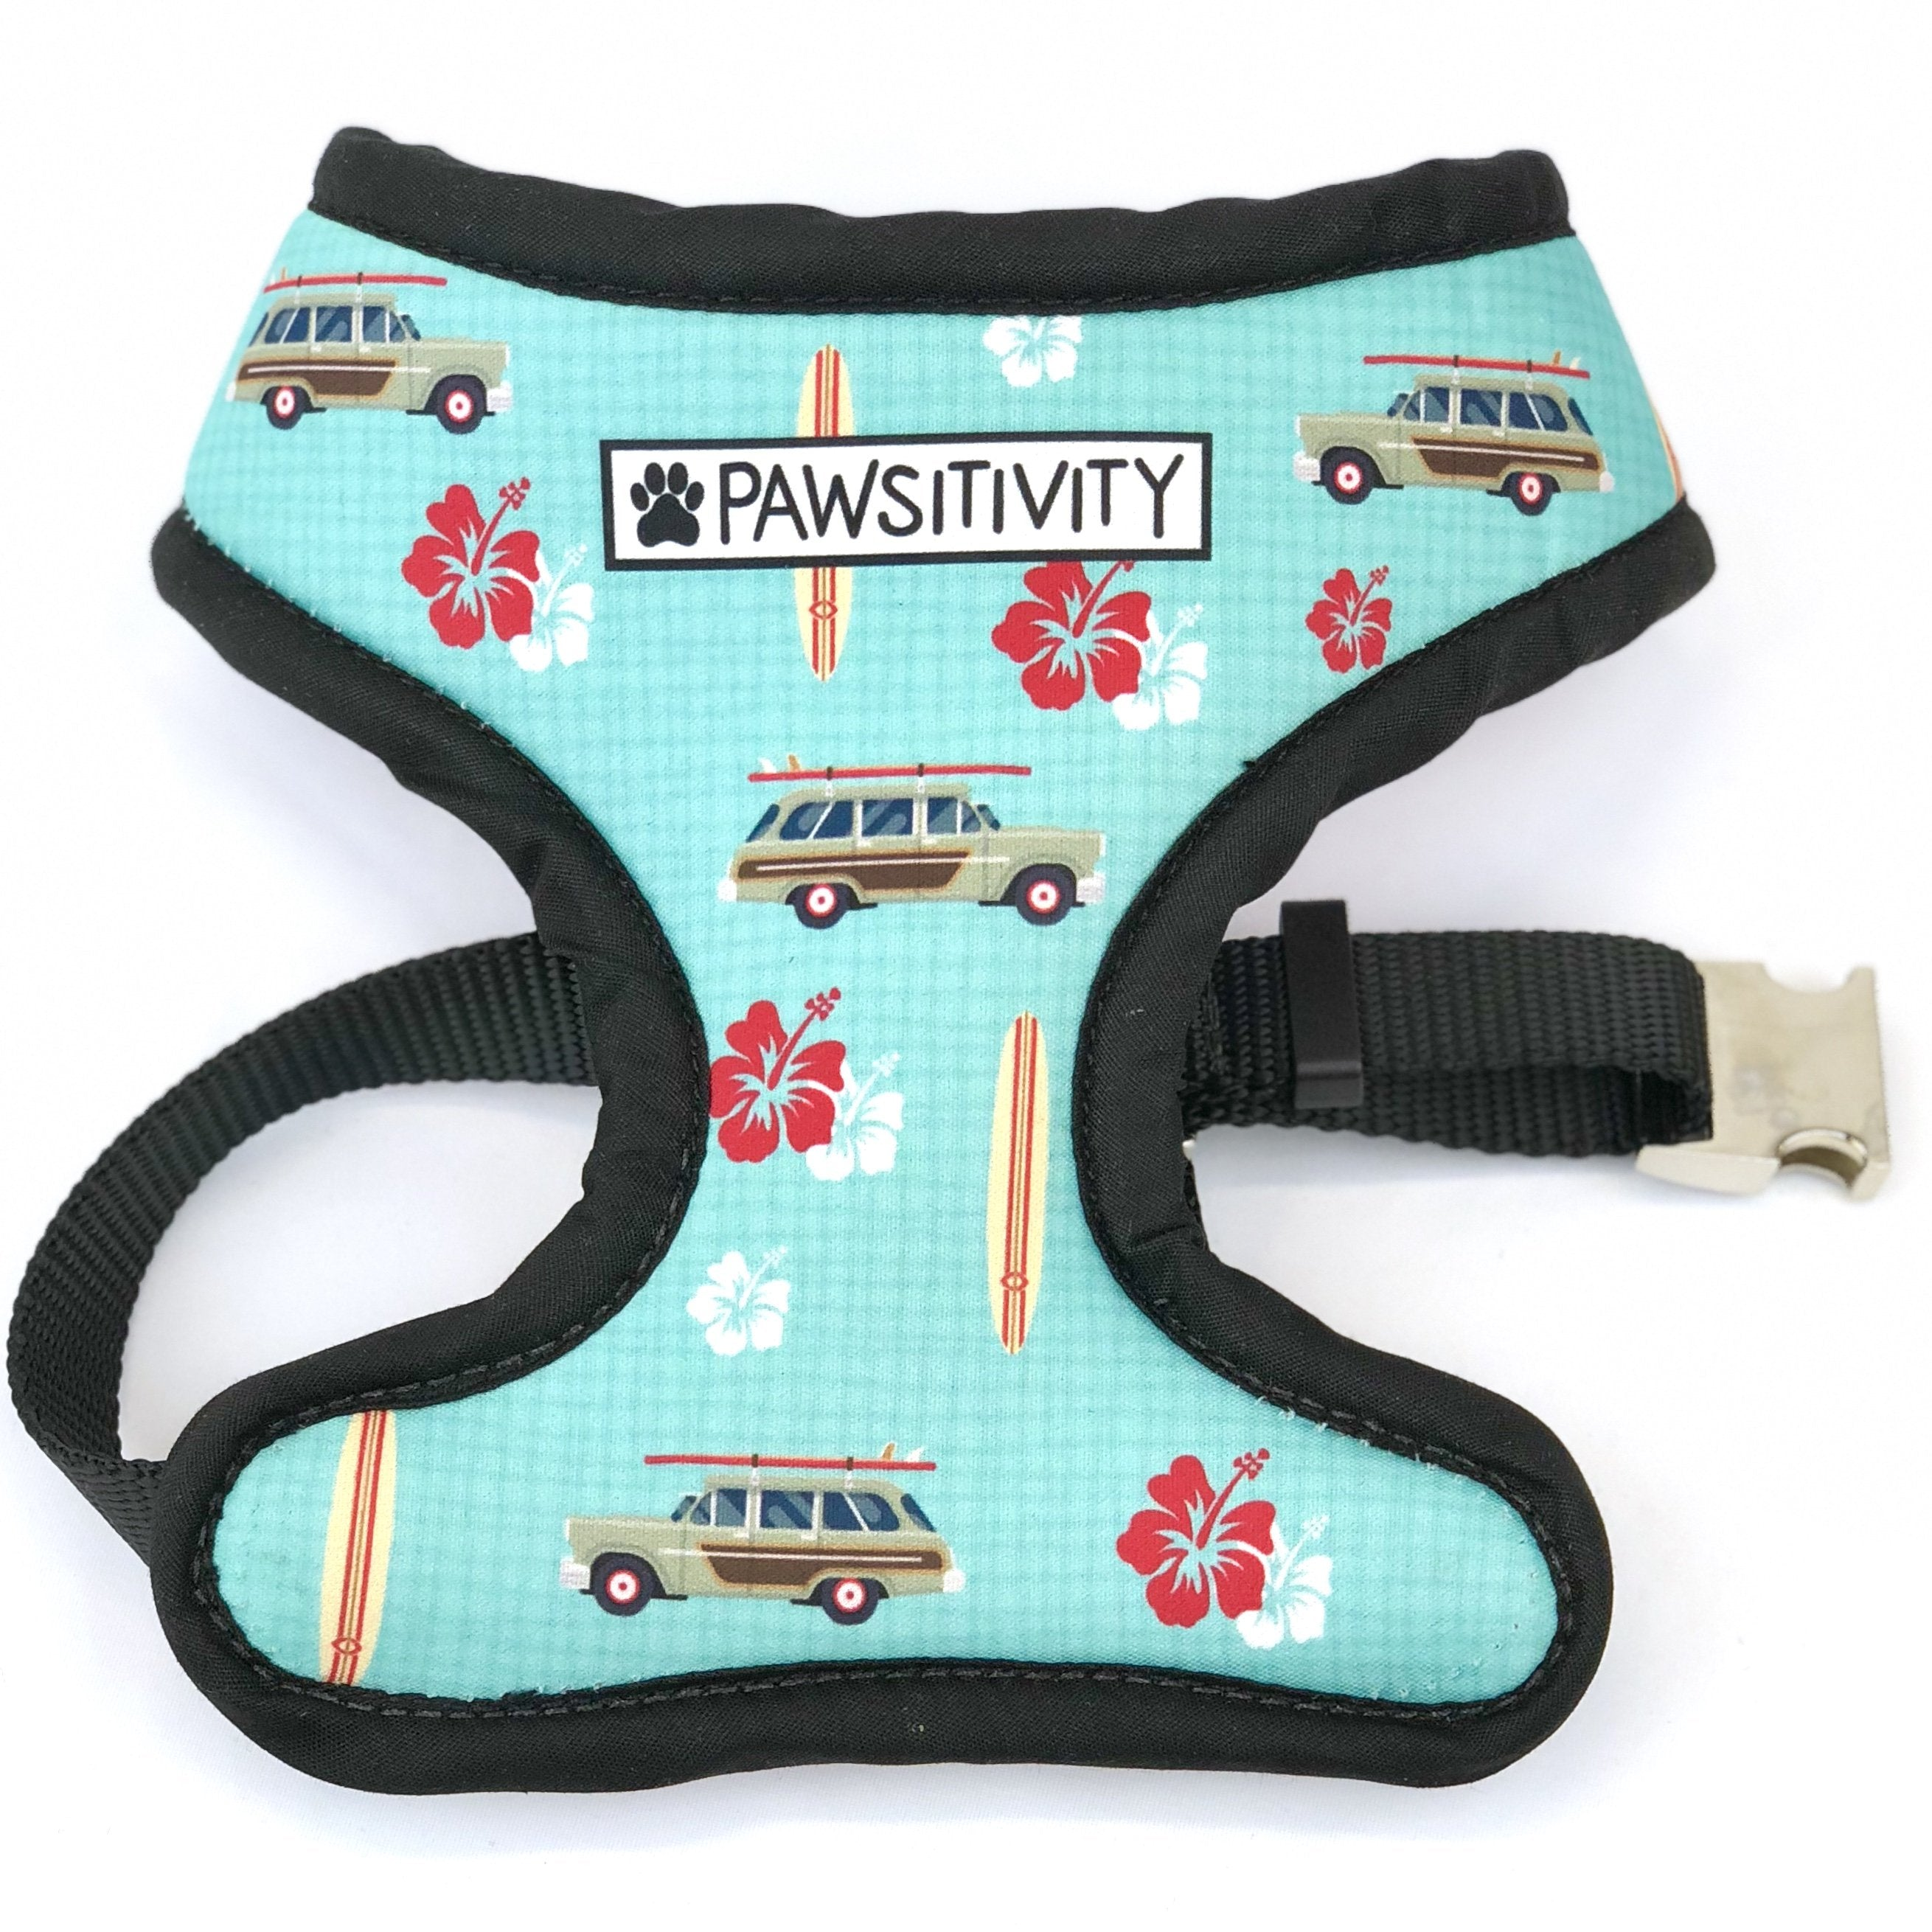 Pawsitivity Reversible Harness - Surf Wagons & Hawaiian